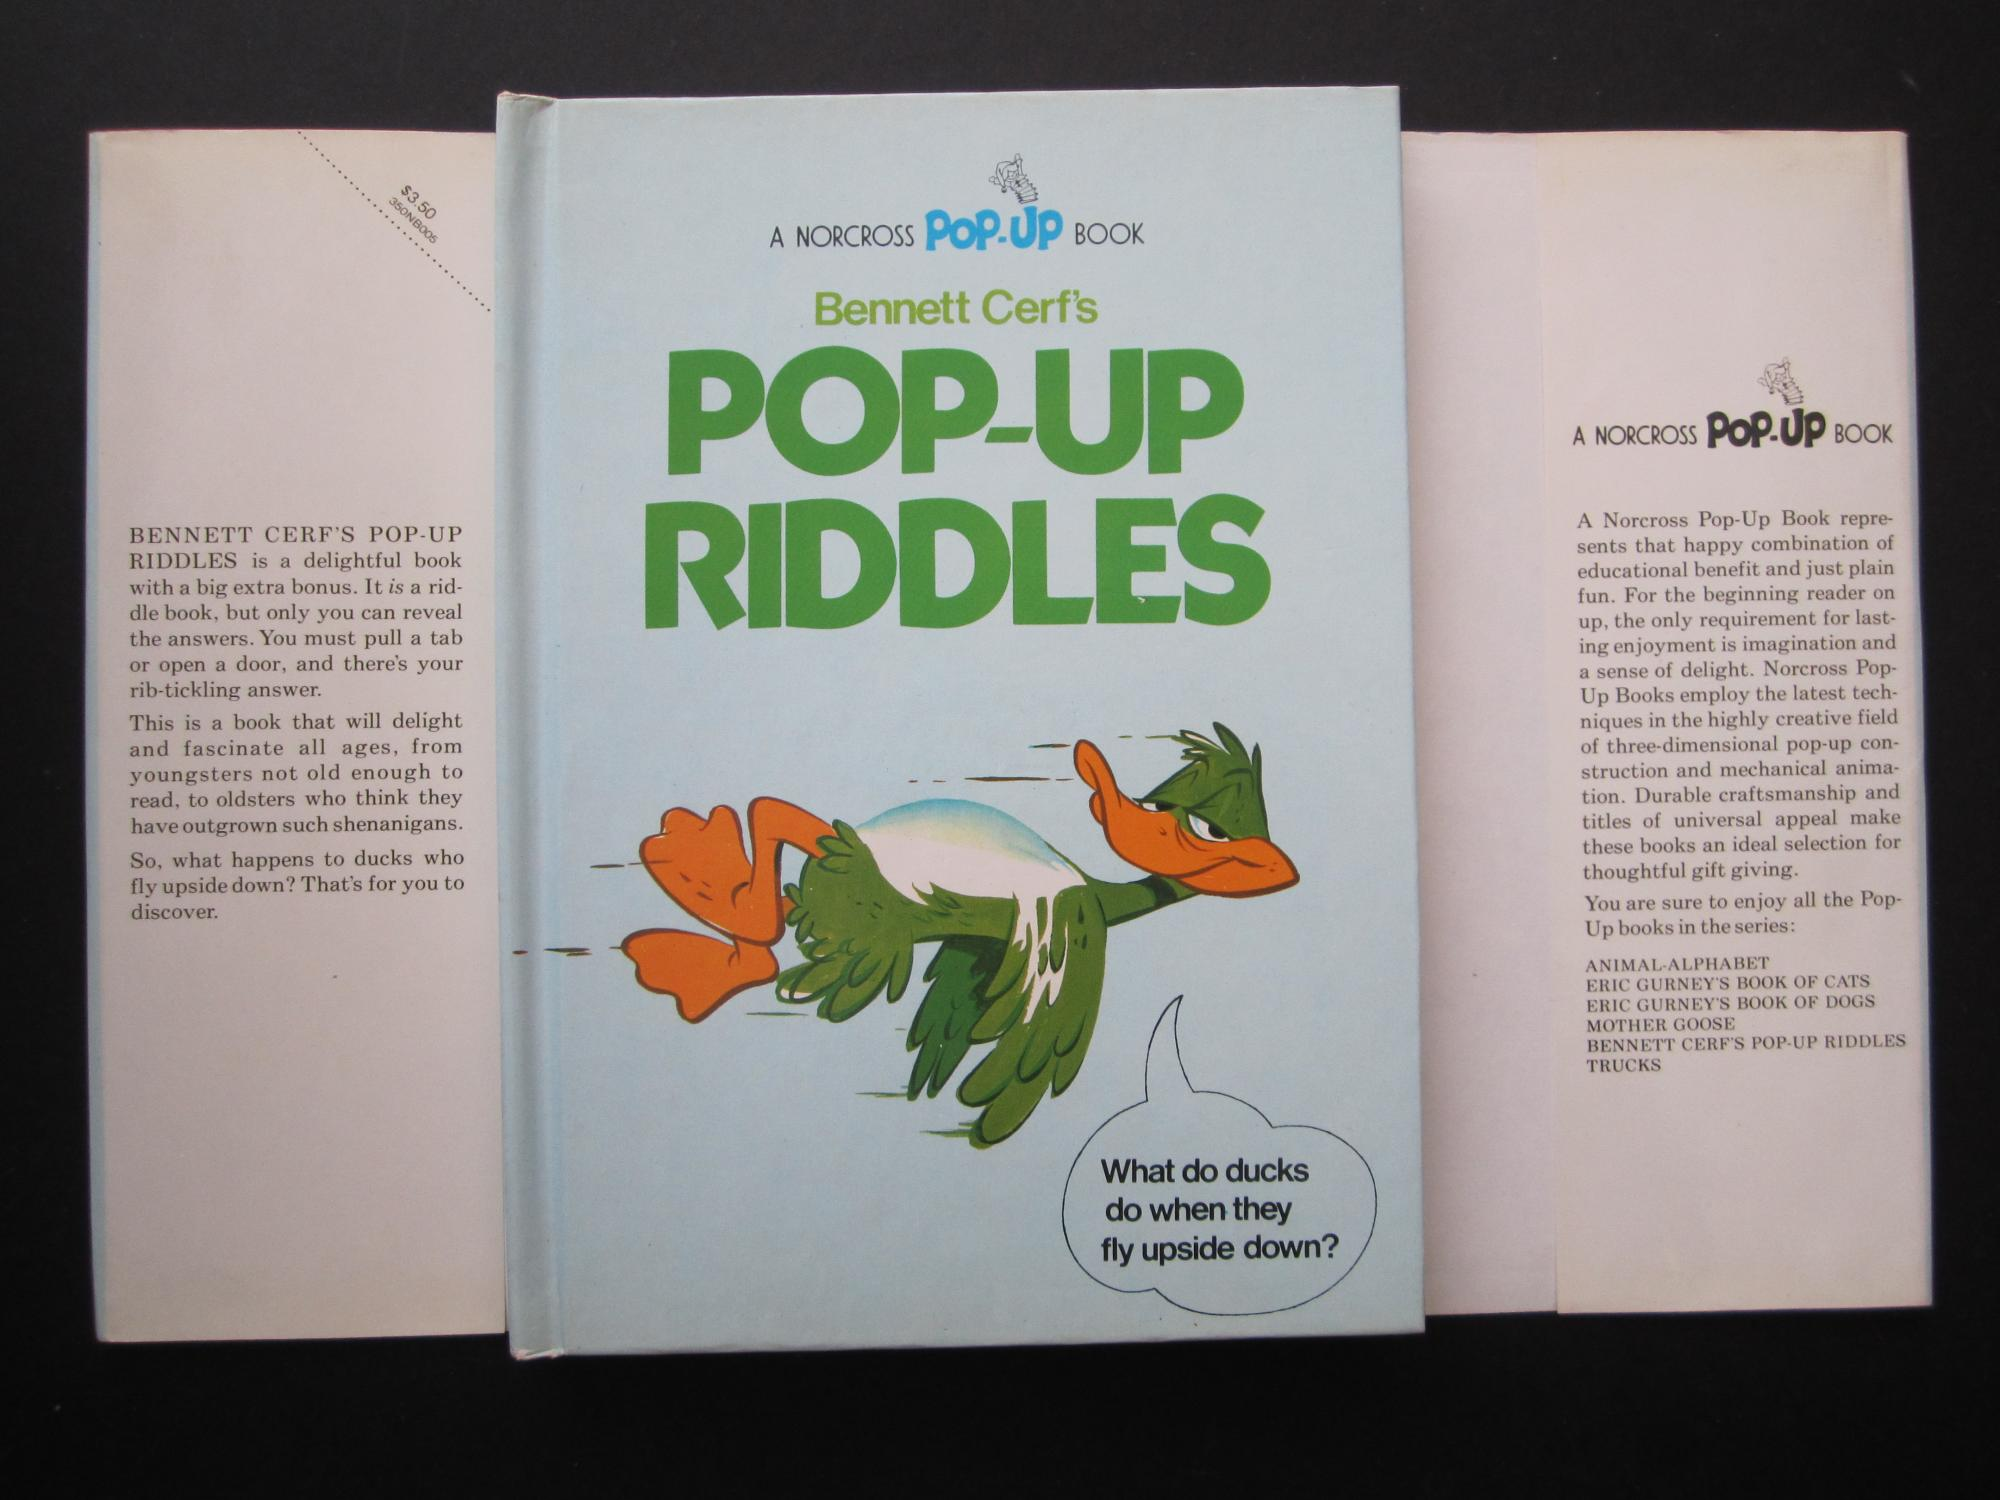 Bennett Cerf's Pop-Up Riddles